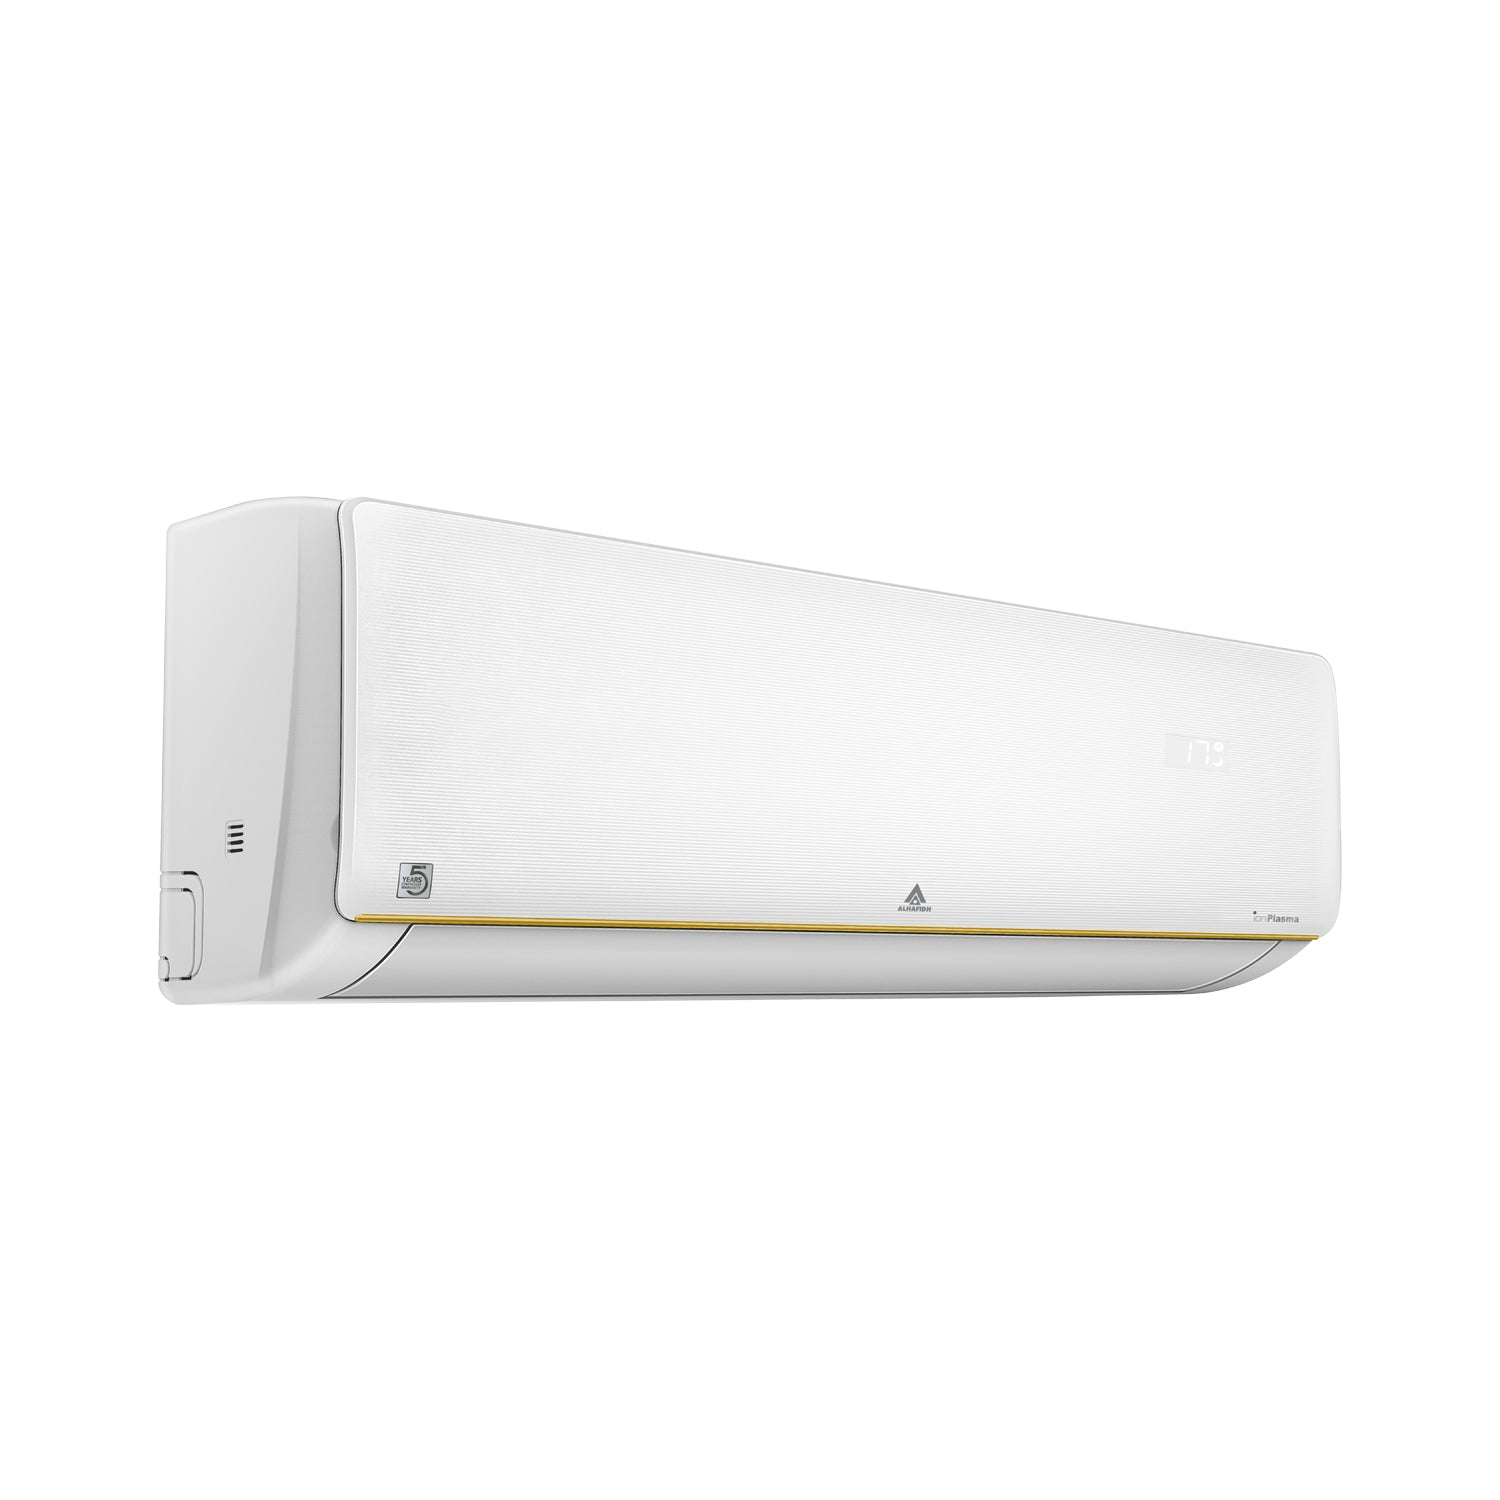 1.5Ton Wall Mounted Split AC ON/OFF R410